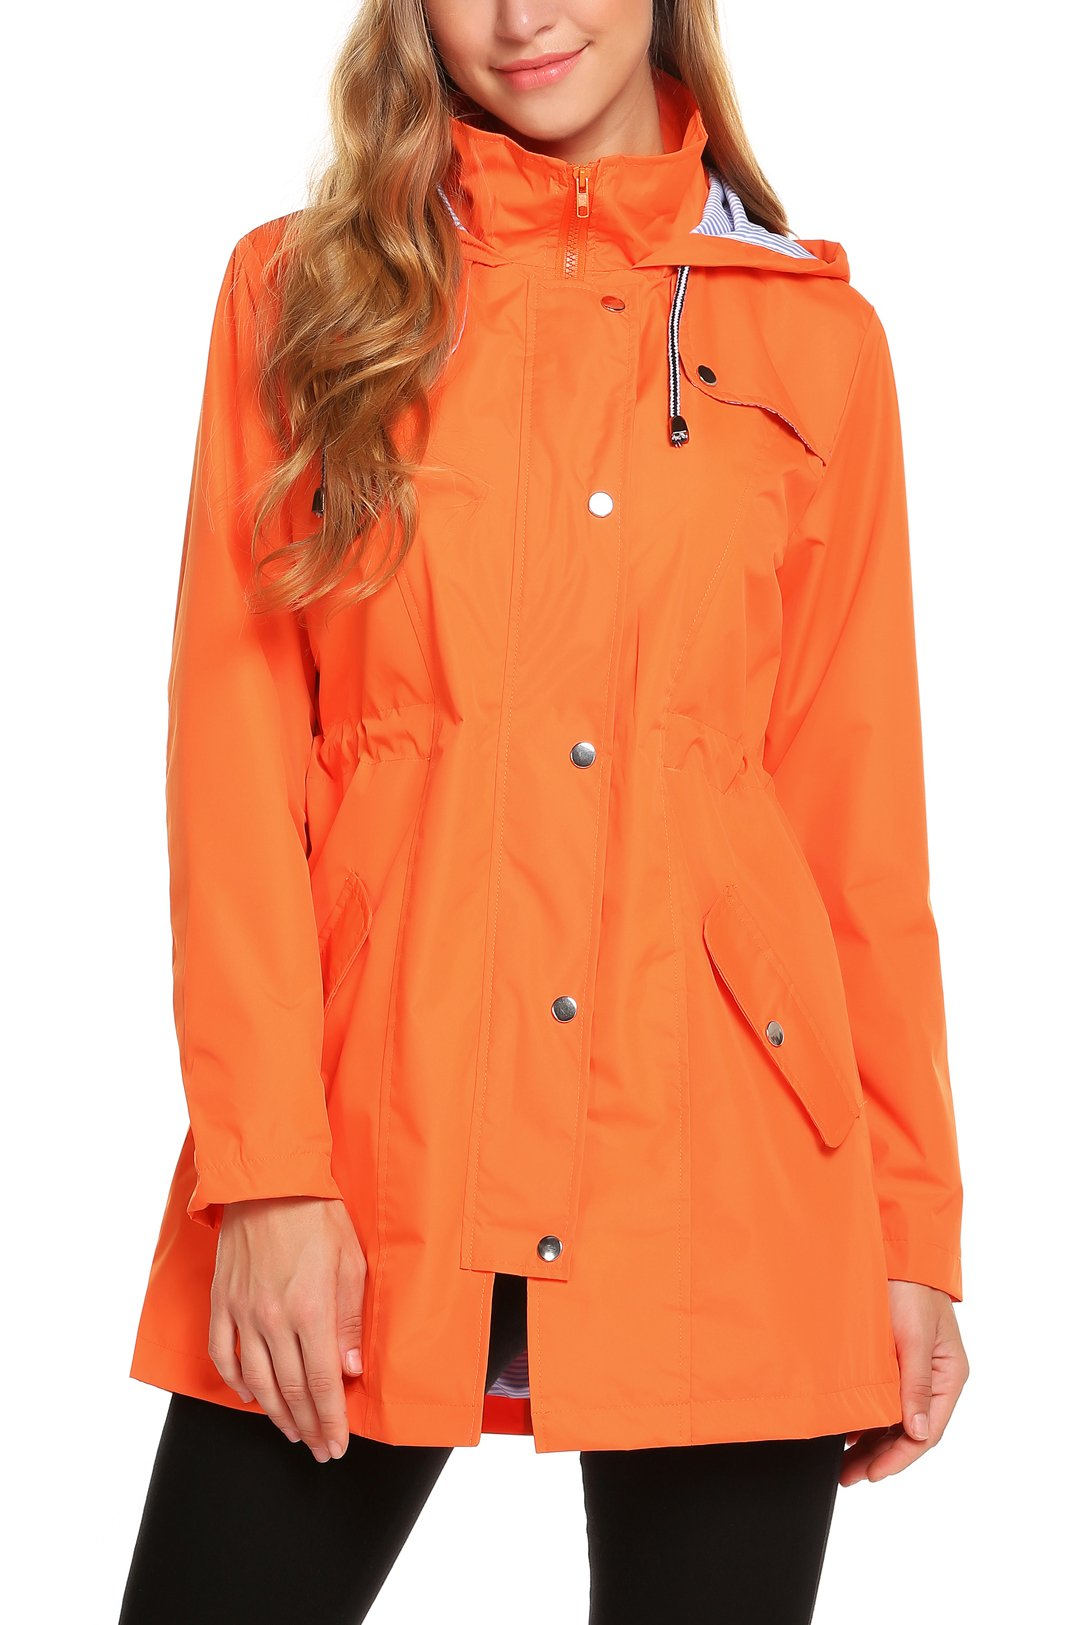 ZHENWEI Womens Lightweight Hooded Waterproof Active Outdoor Rain Jacket  S-XXL 22151cca5